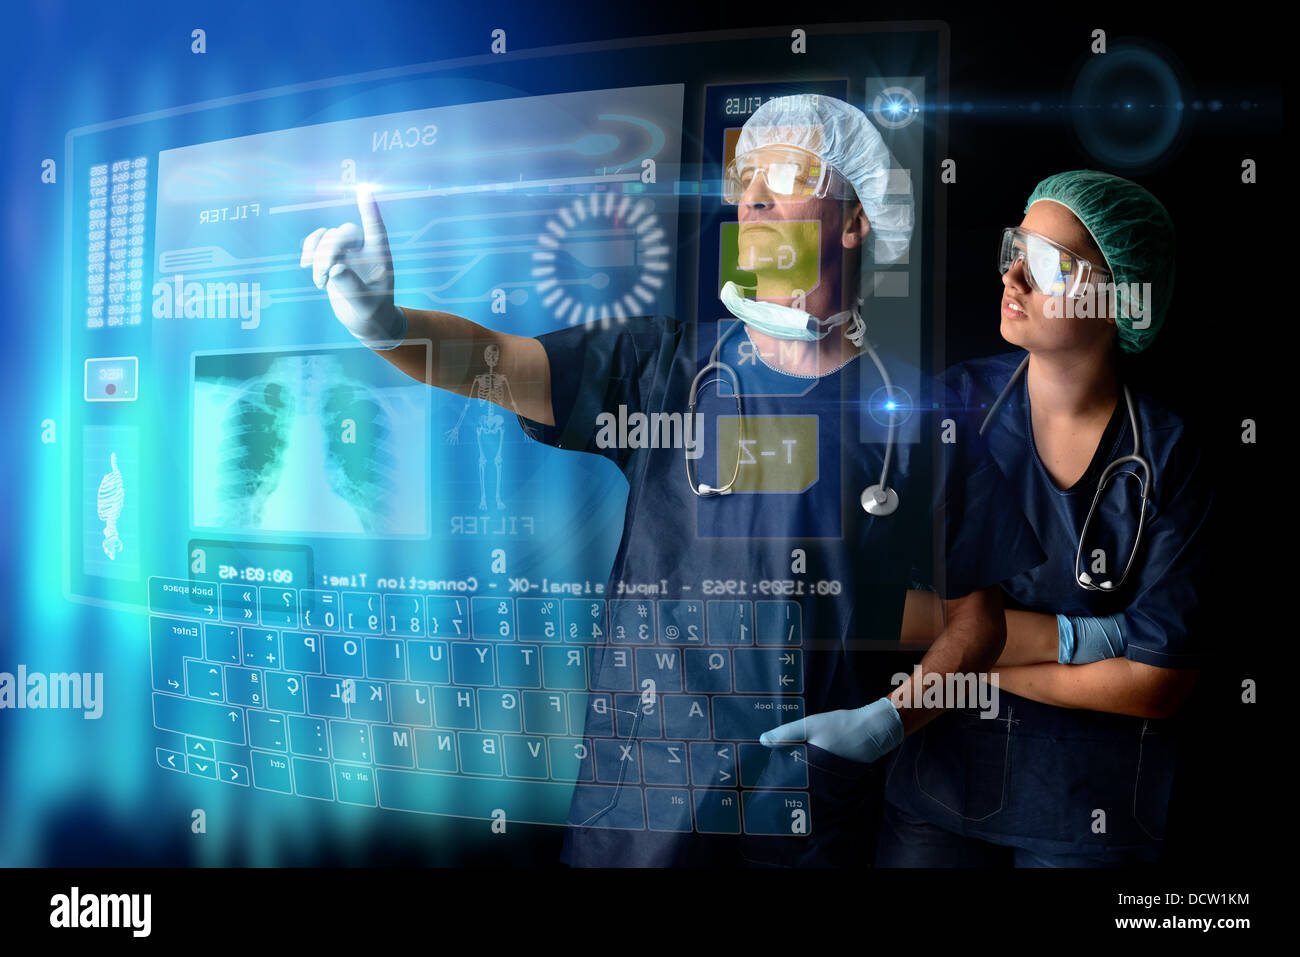 Doctors in a research station with digital screens and keyboard - Stock Image